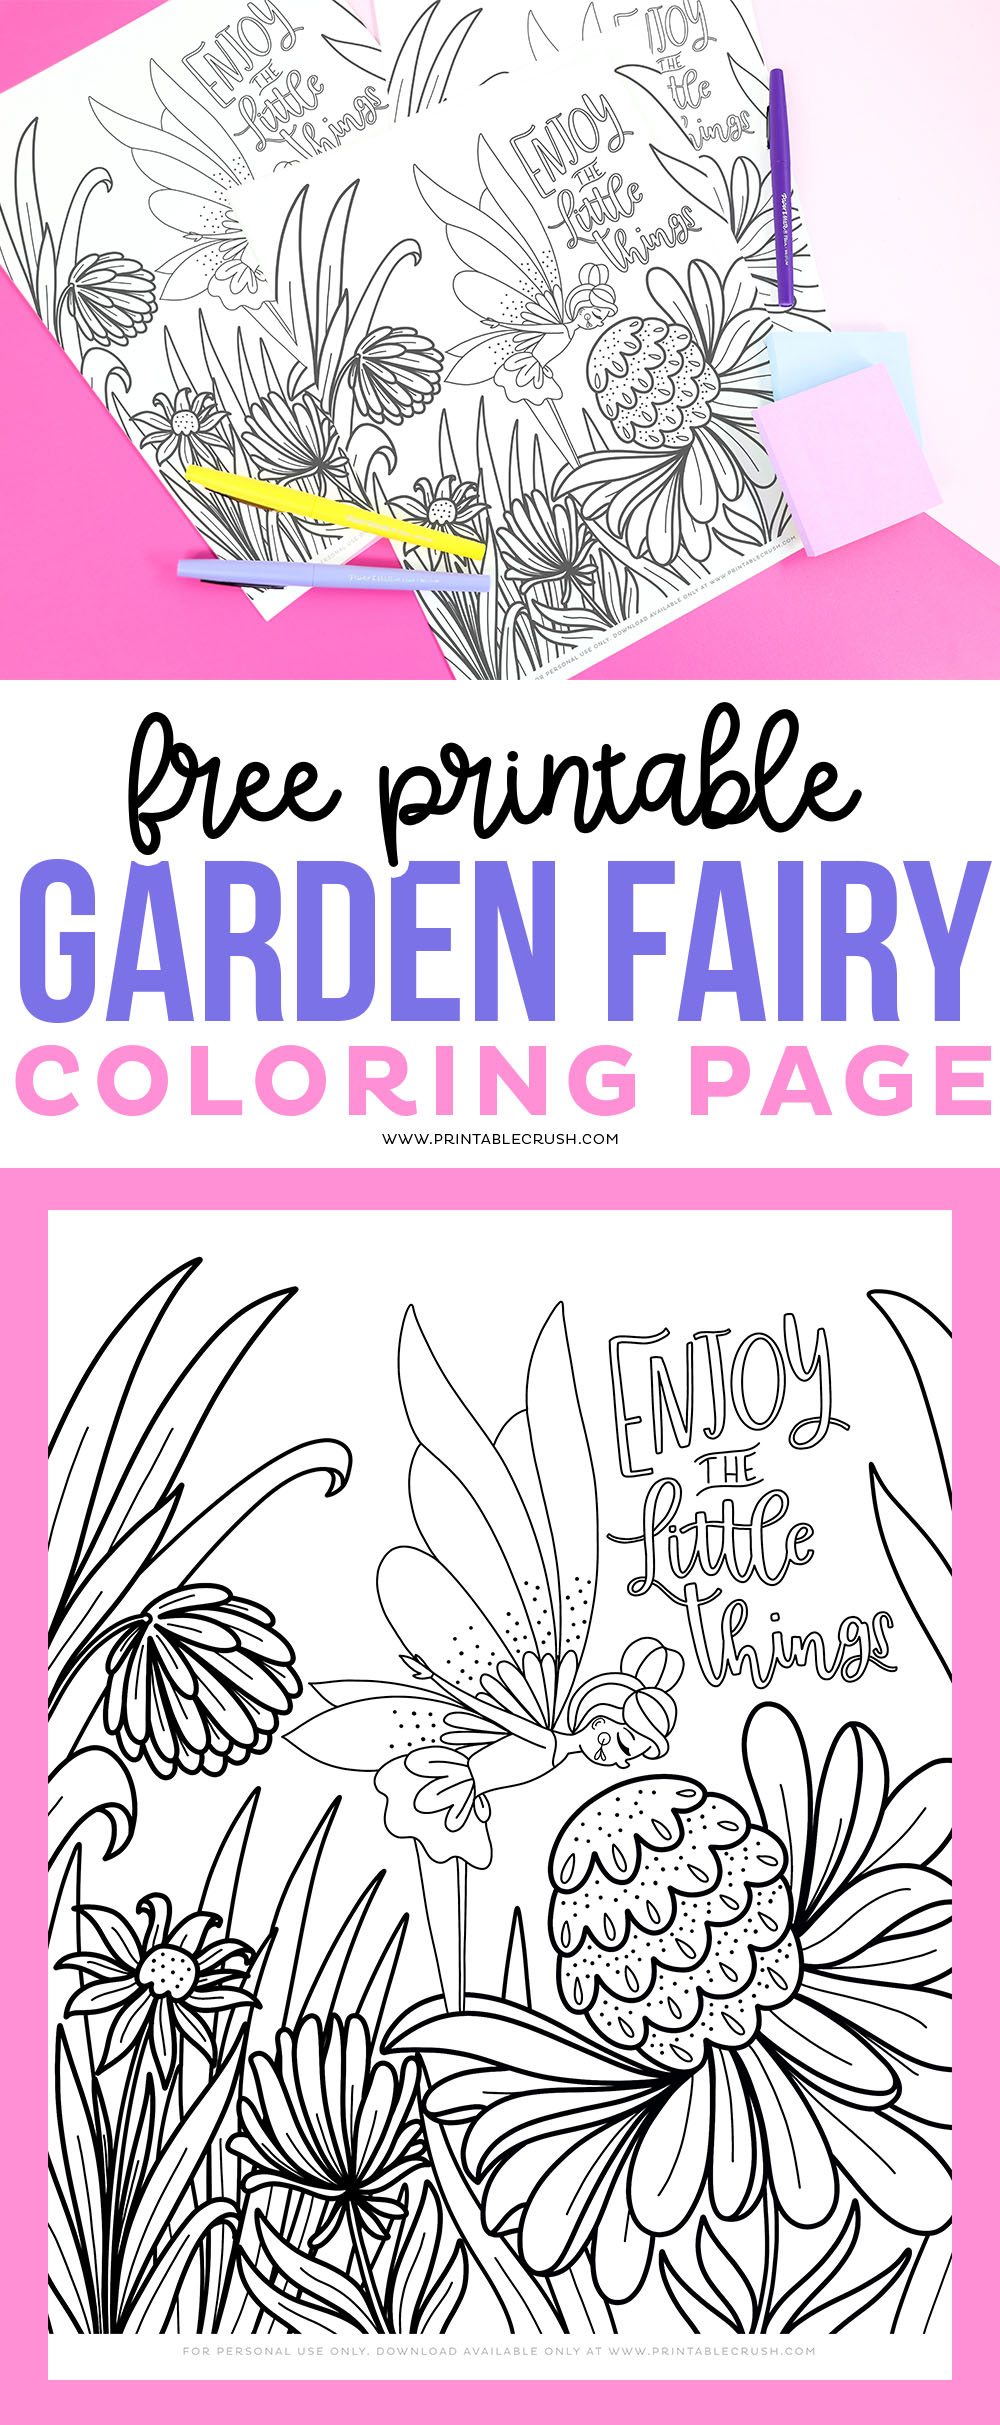 Free Garden Fairy Coloring Page Printable Crush